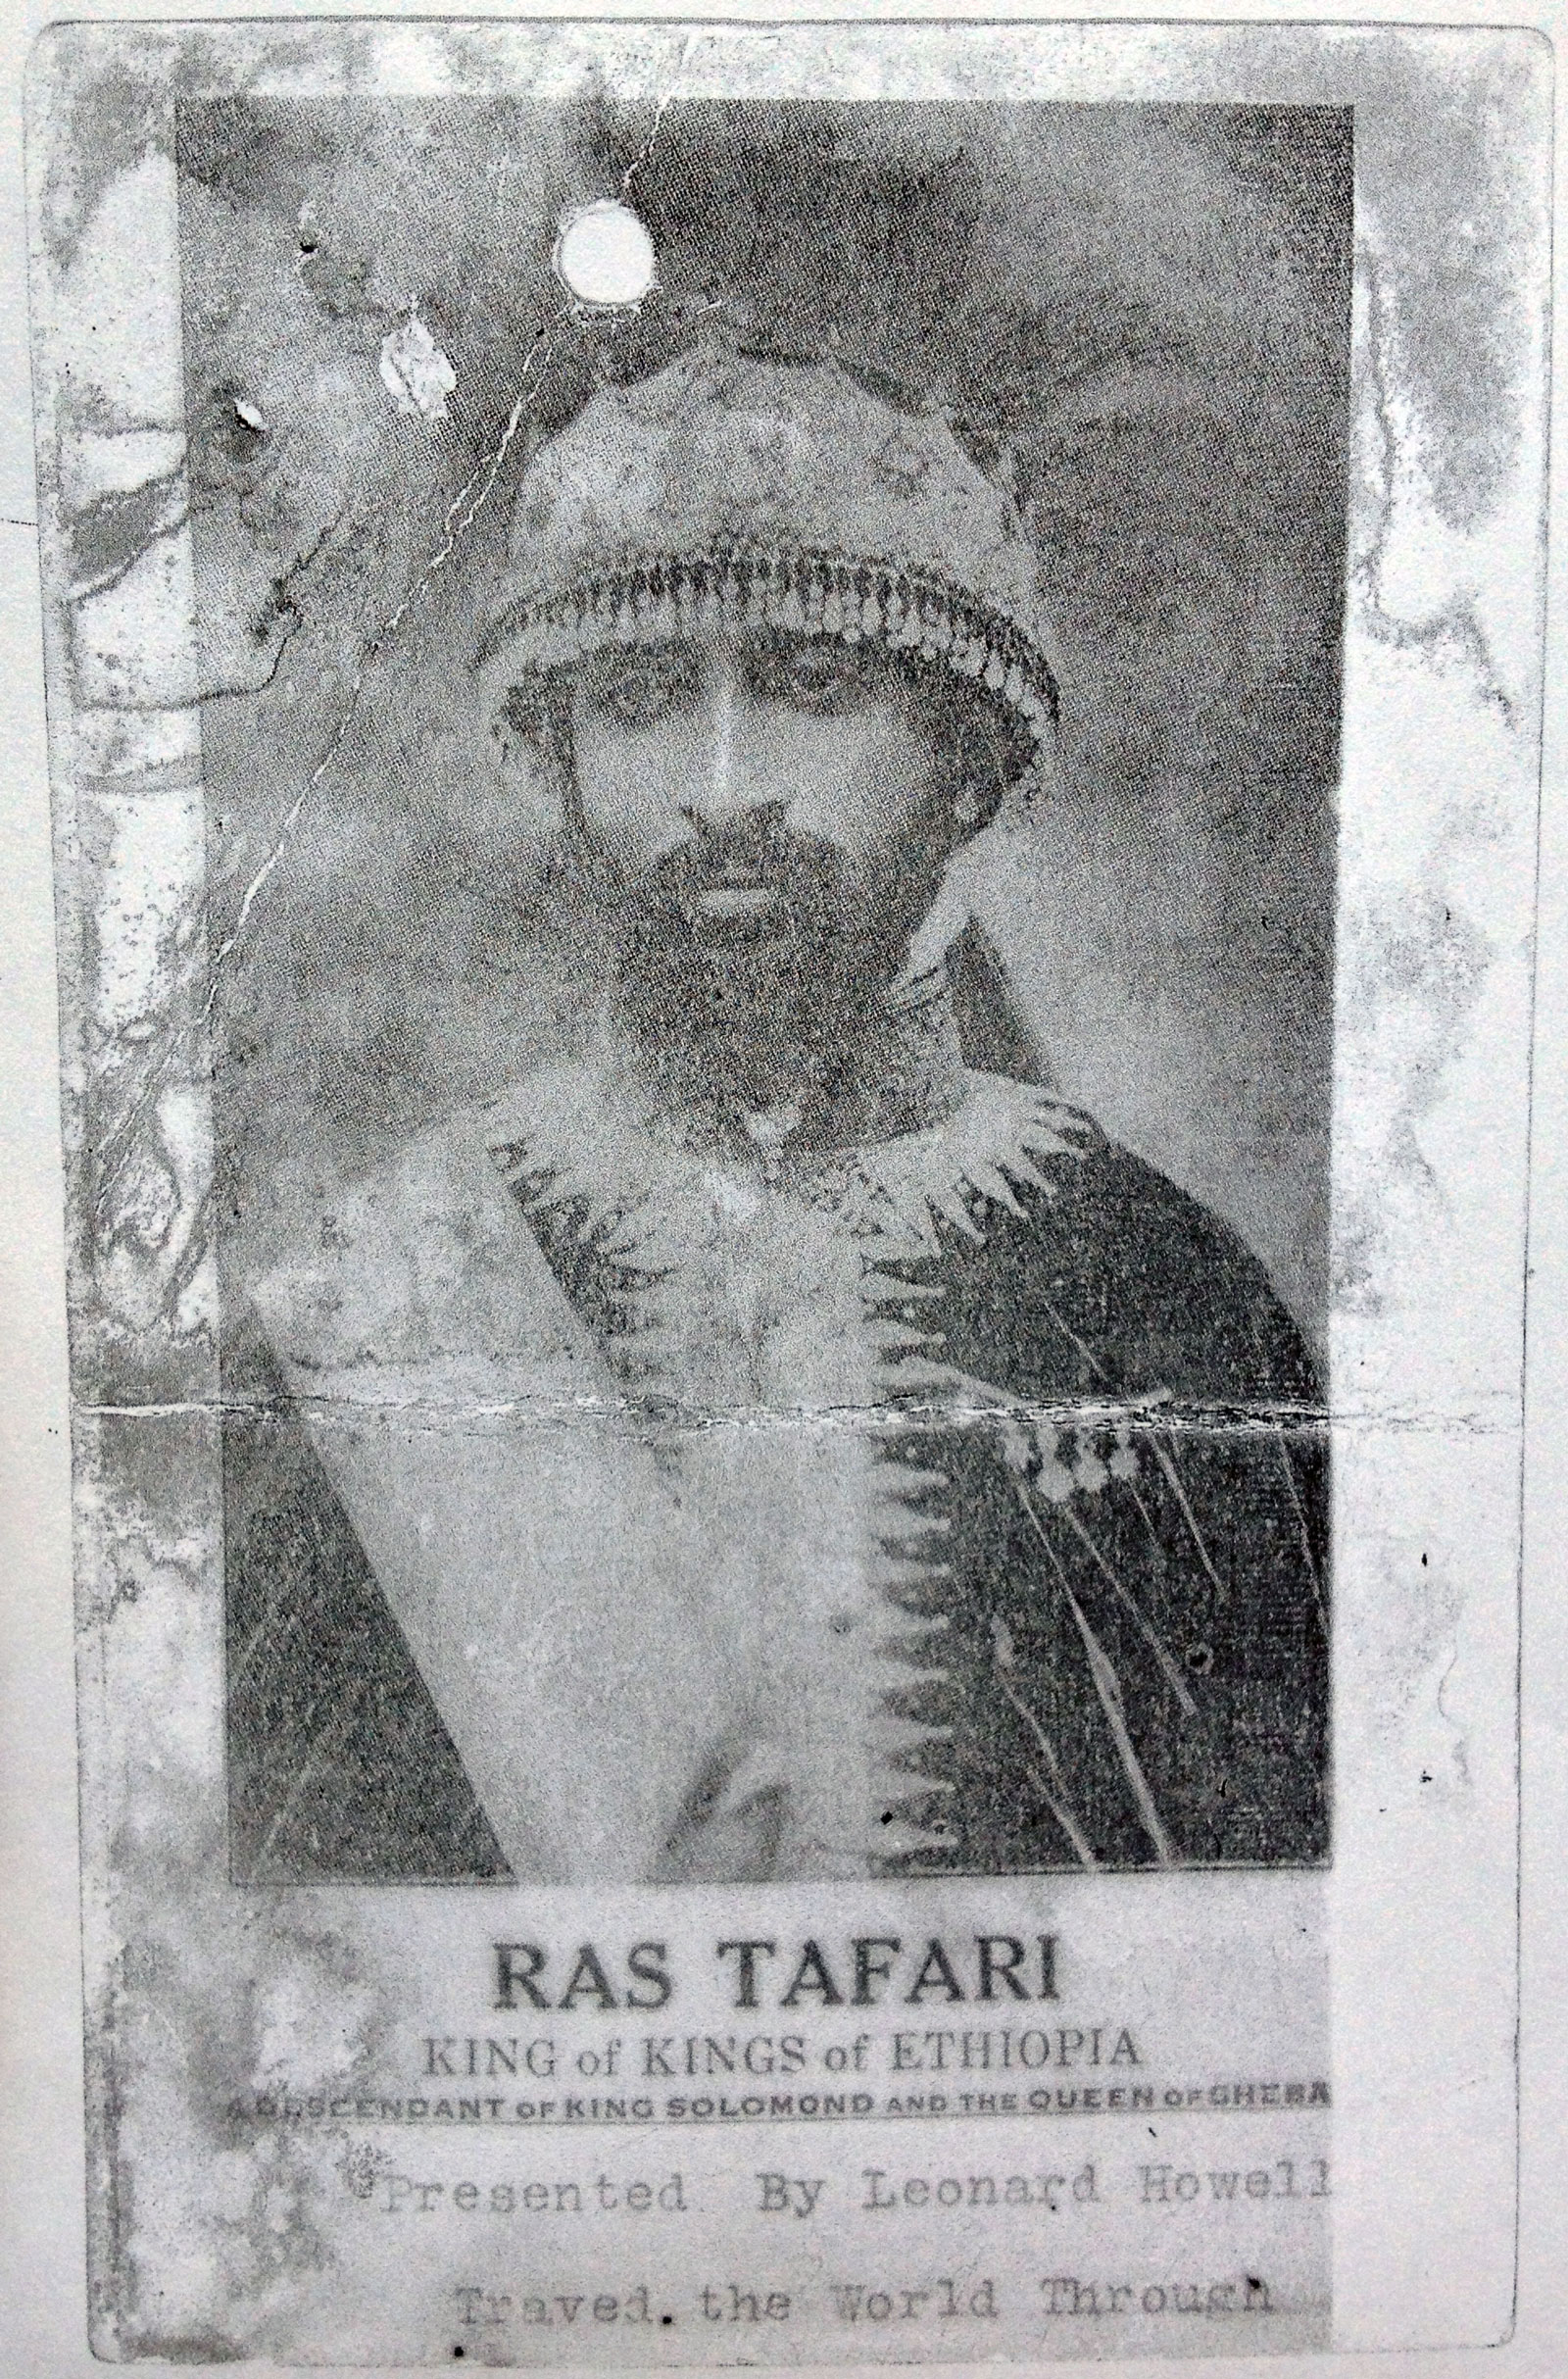 Pamphlet with image of Haile Selassie, distributed by Leonard Howell at his public meetings, circa 1935